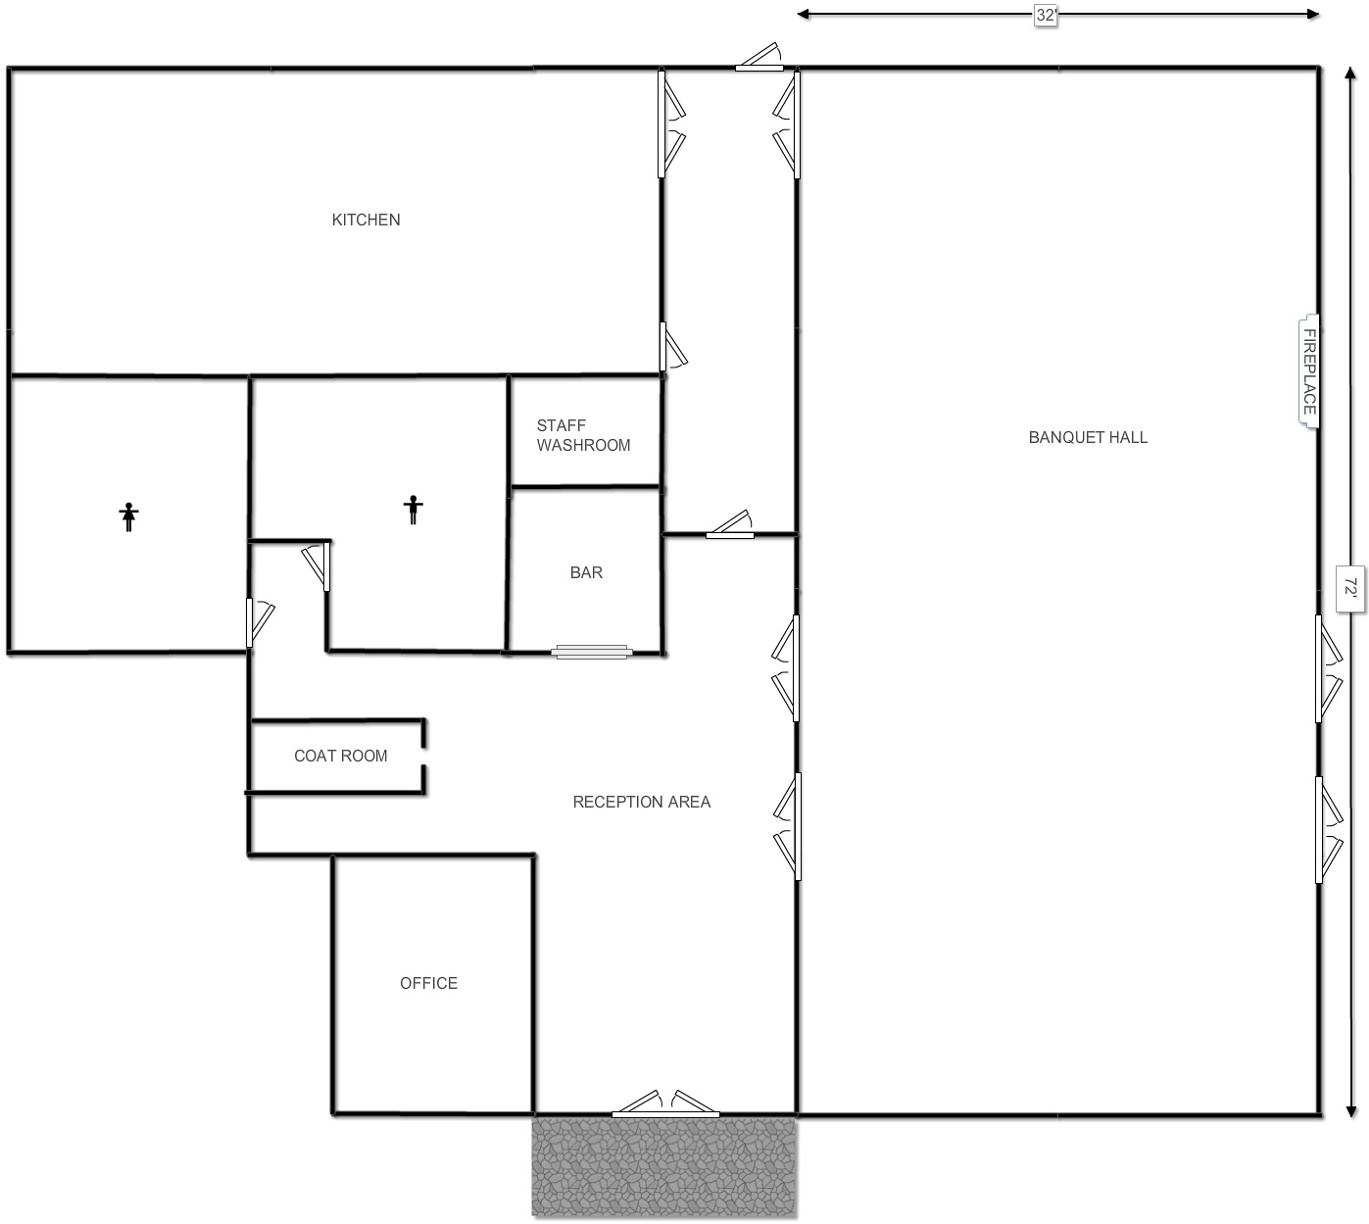 Banquet hall floor plan gurus floor for Banquet hall floor plan